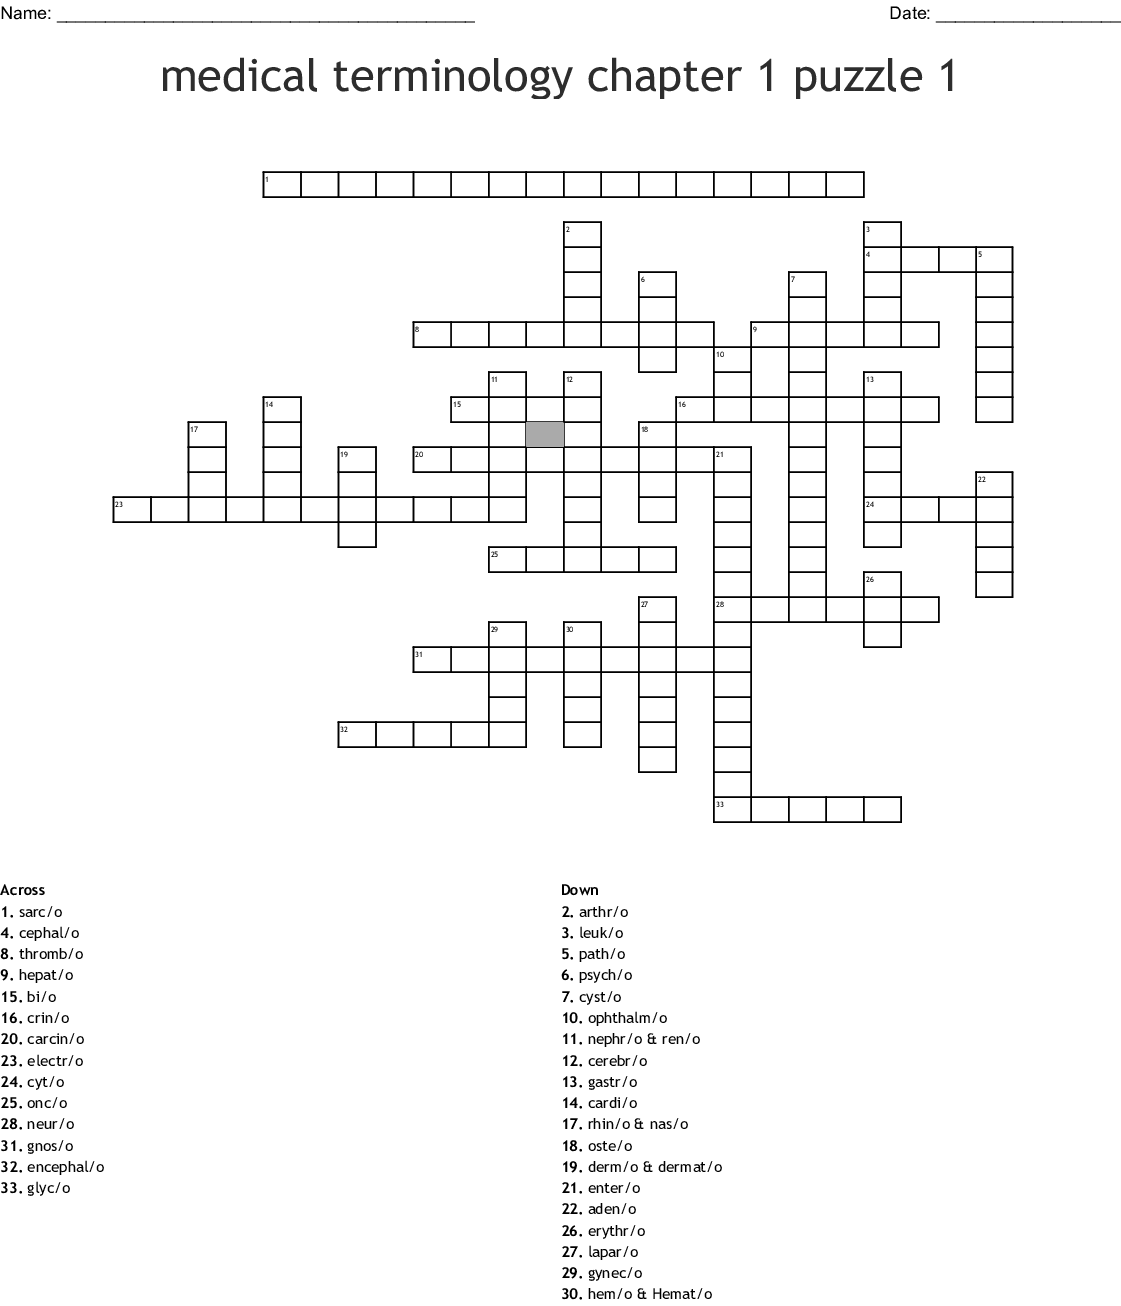 Medical Terminology Chapter 1 Puzzle 1 Crossword